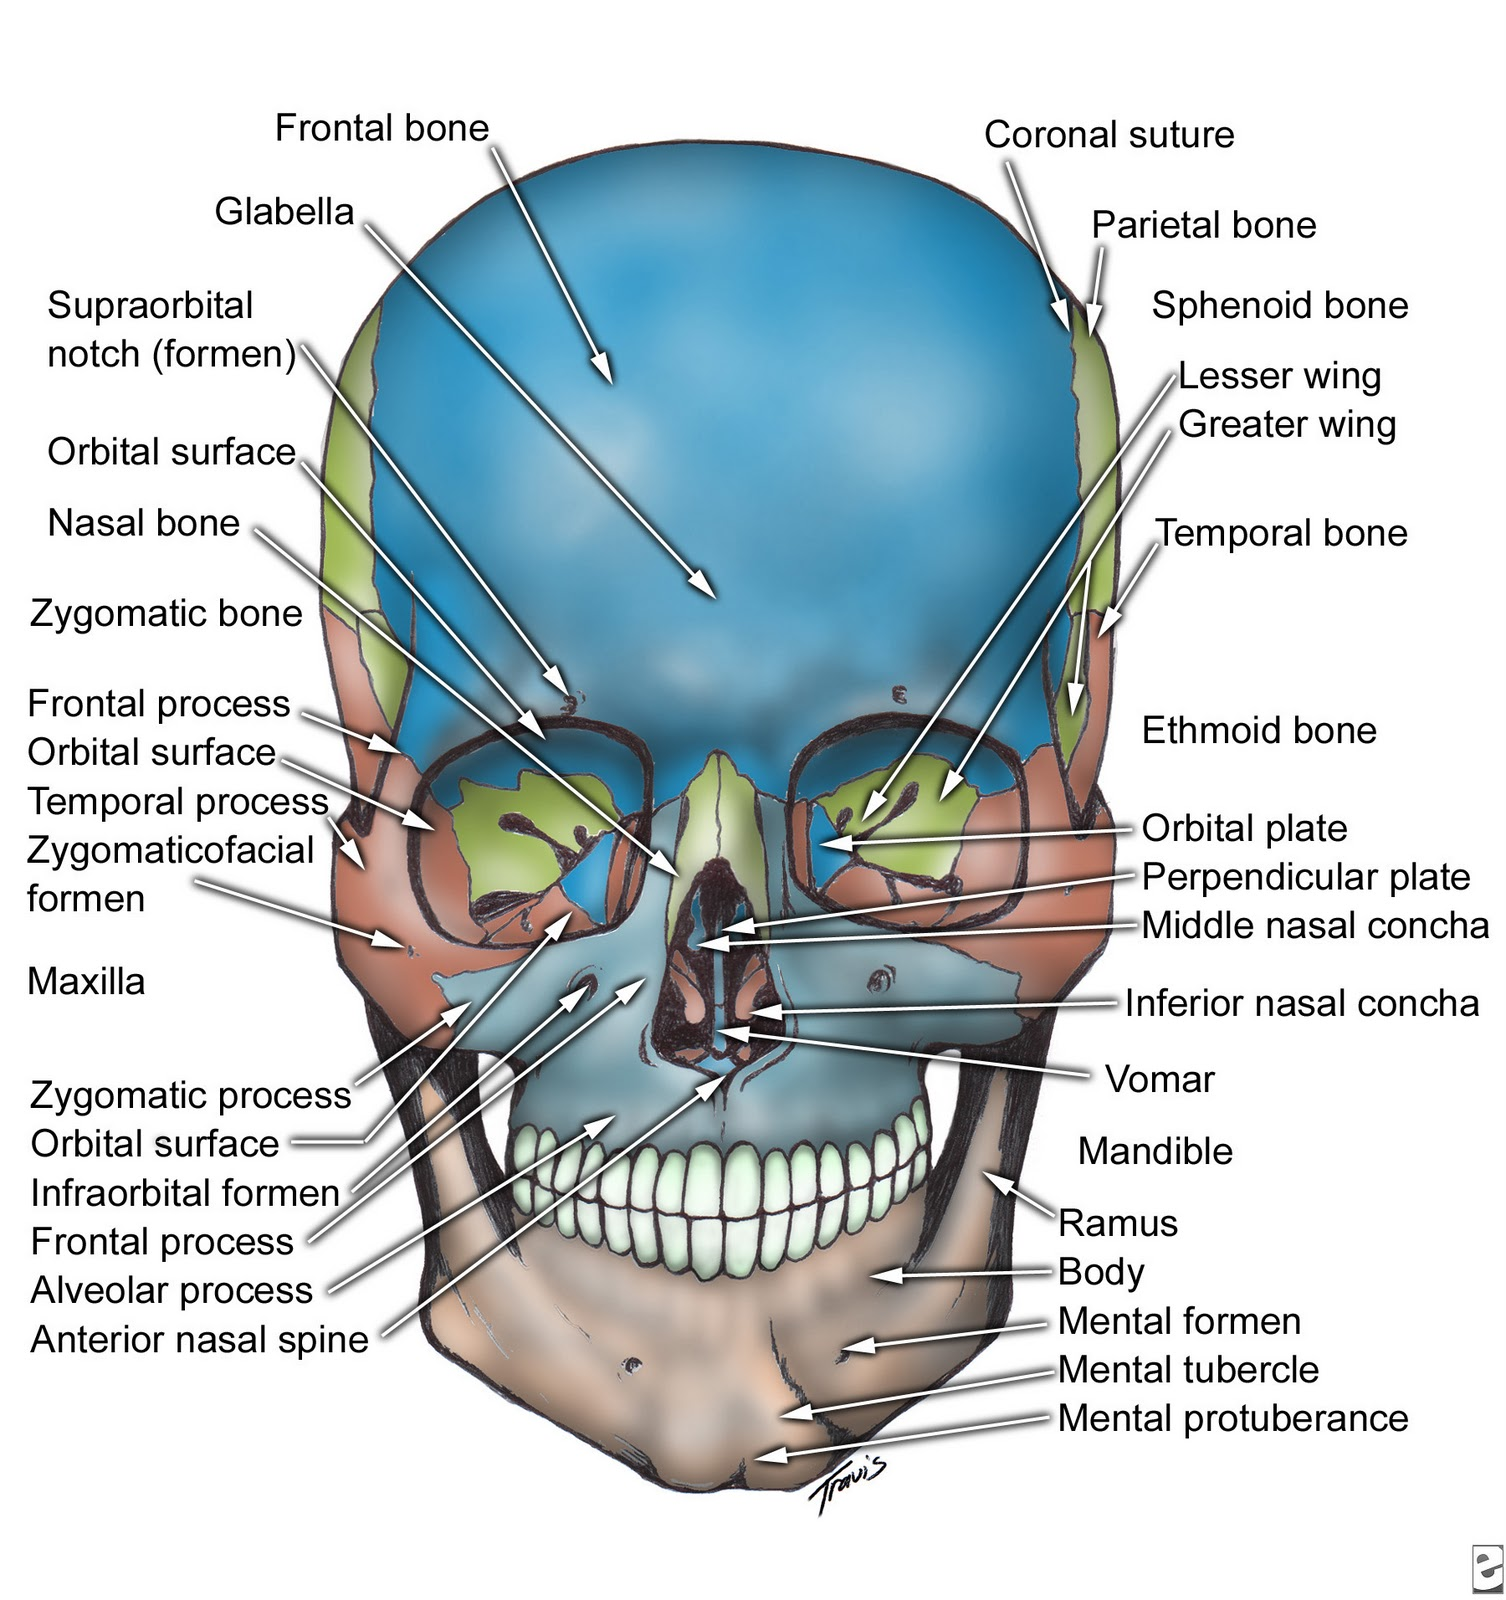 Principles Of Human Anatomy And Physiology Chapter 7